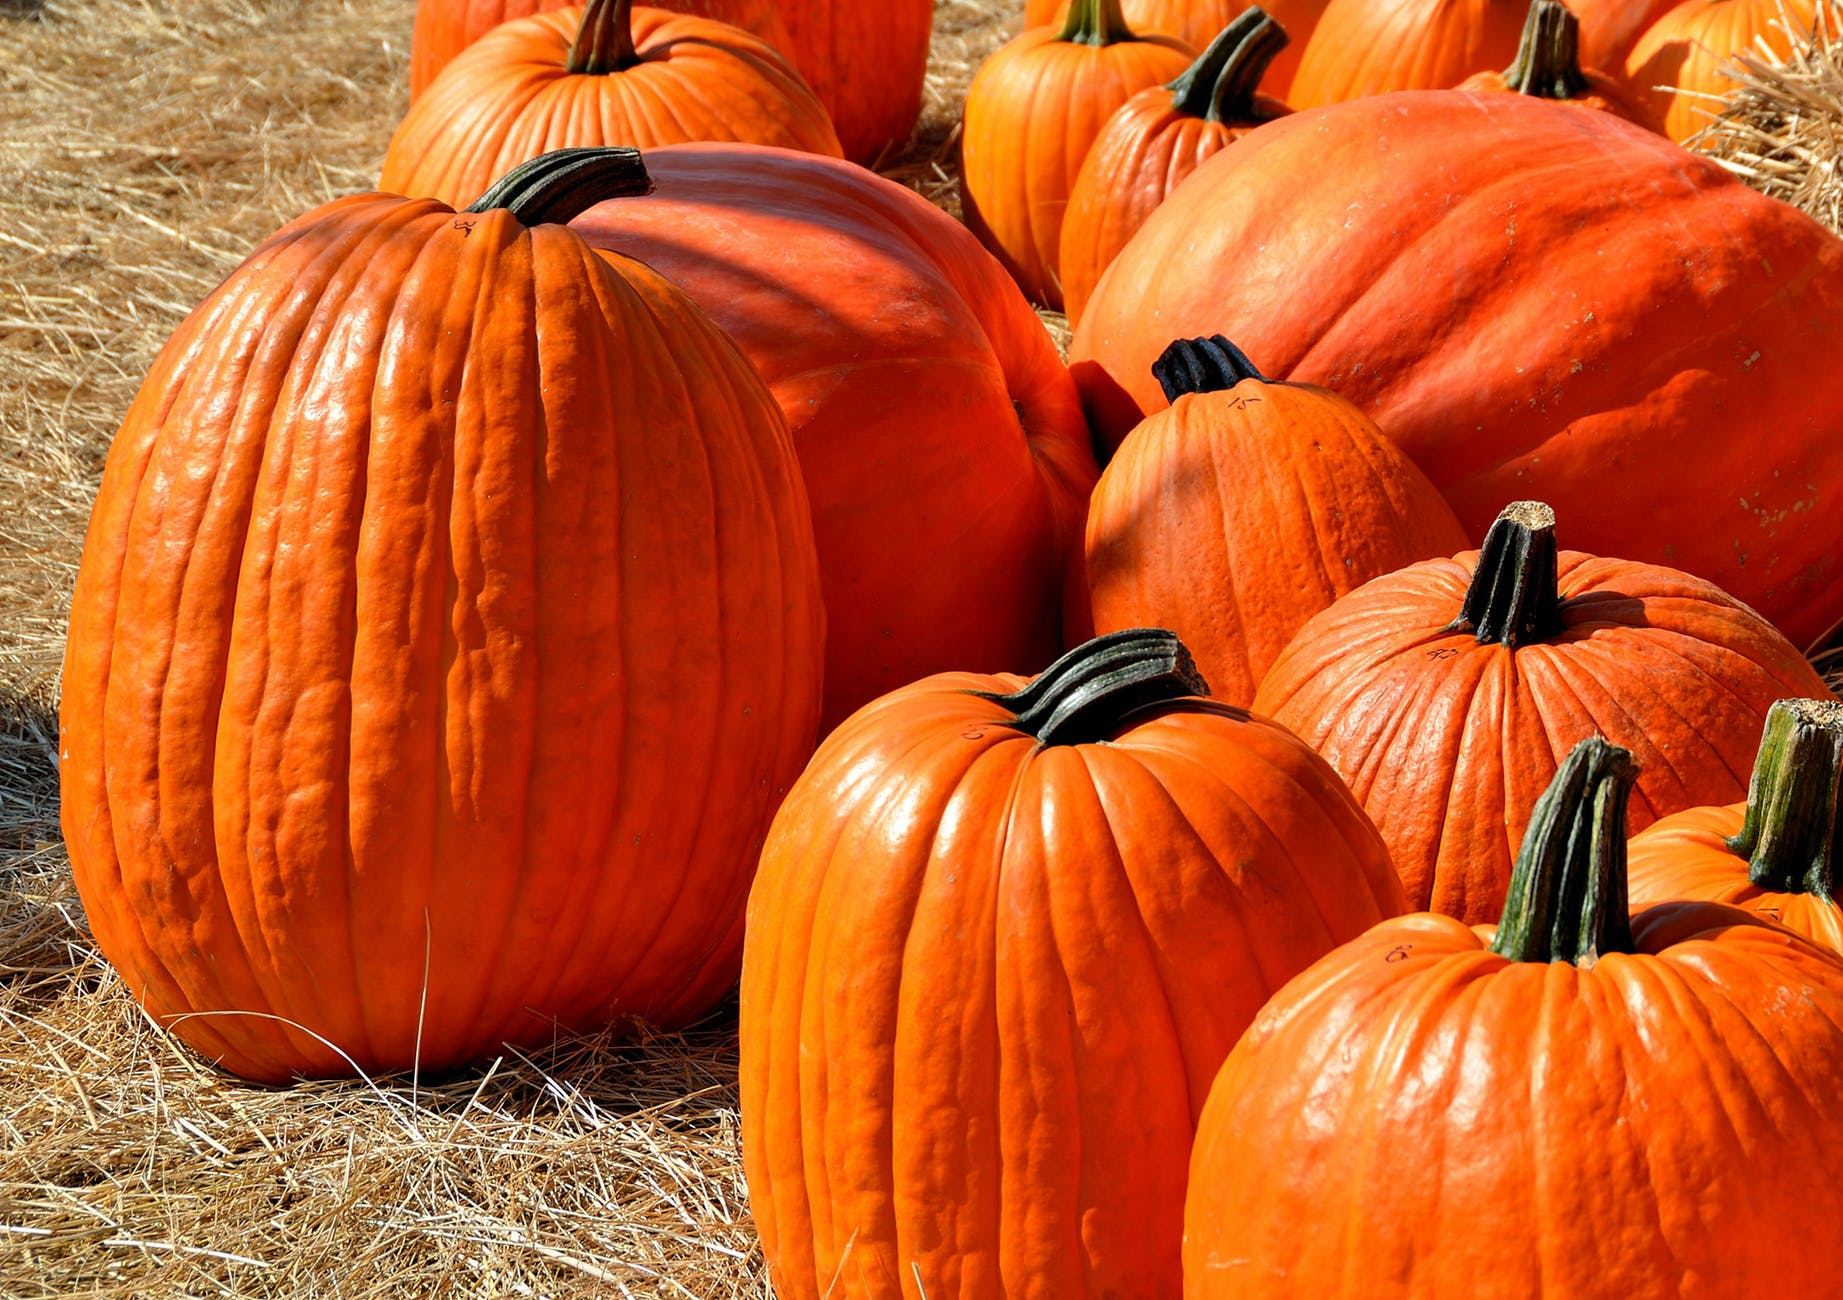 close up photography of pumpkins